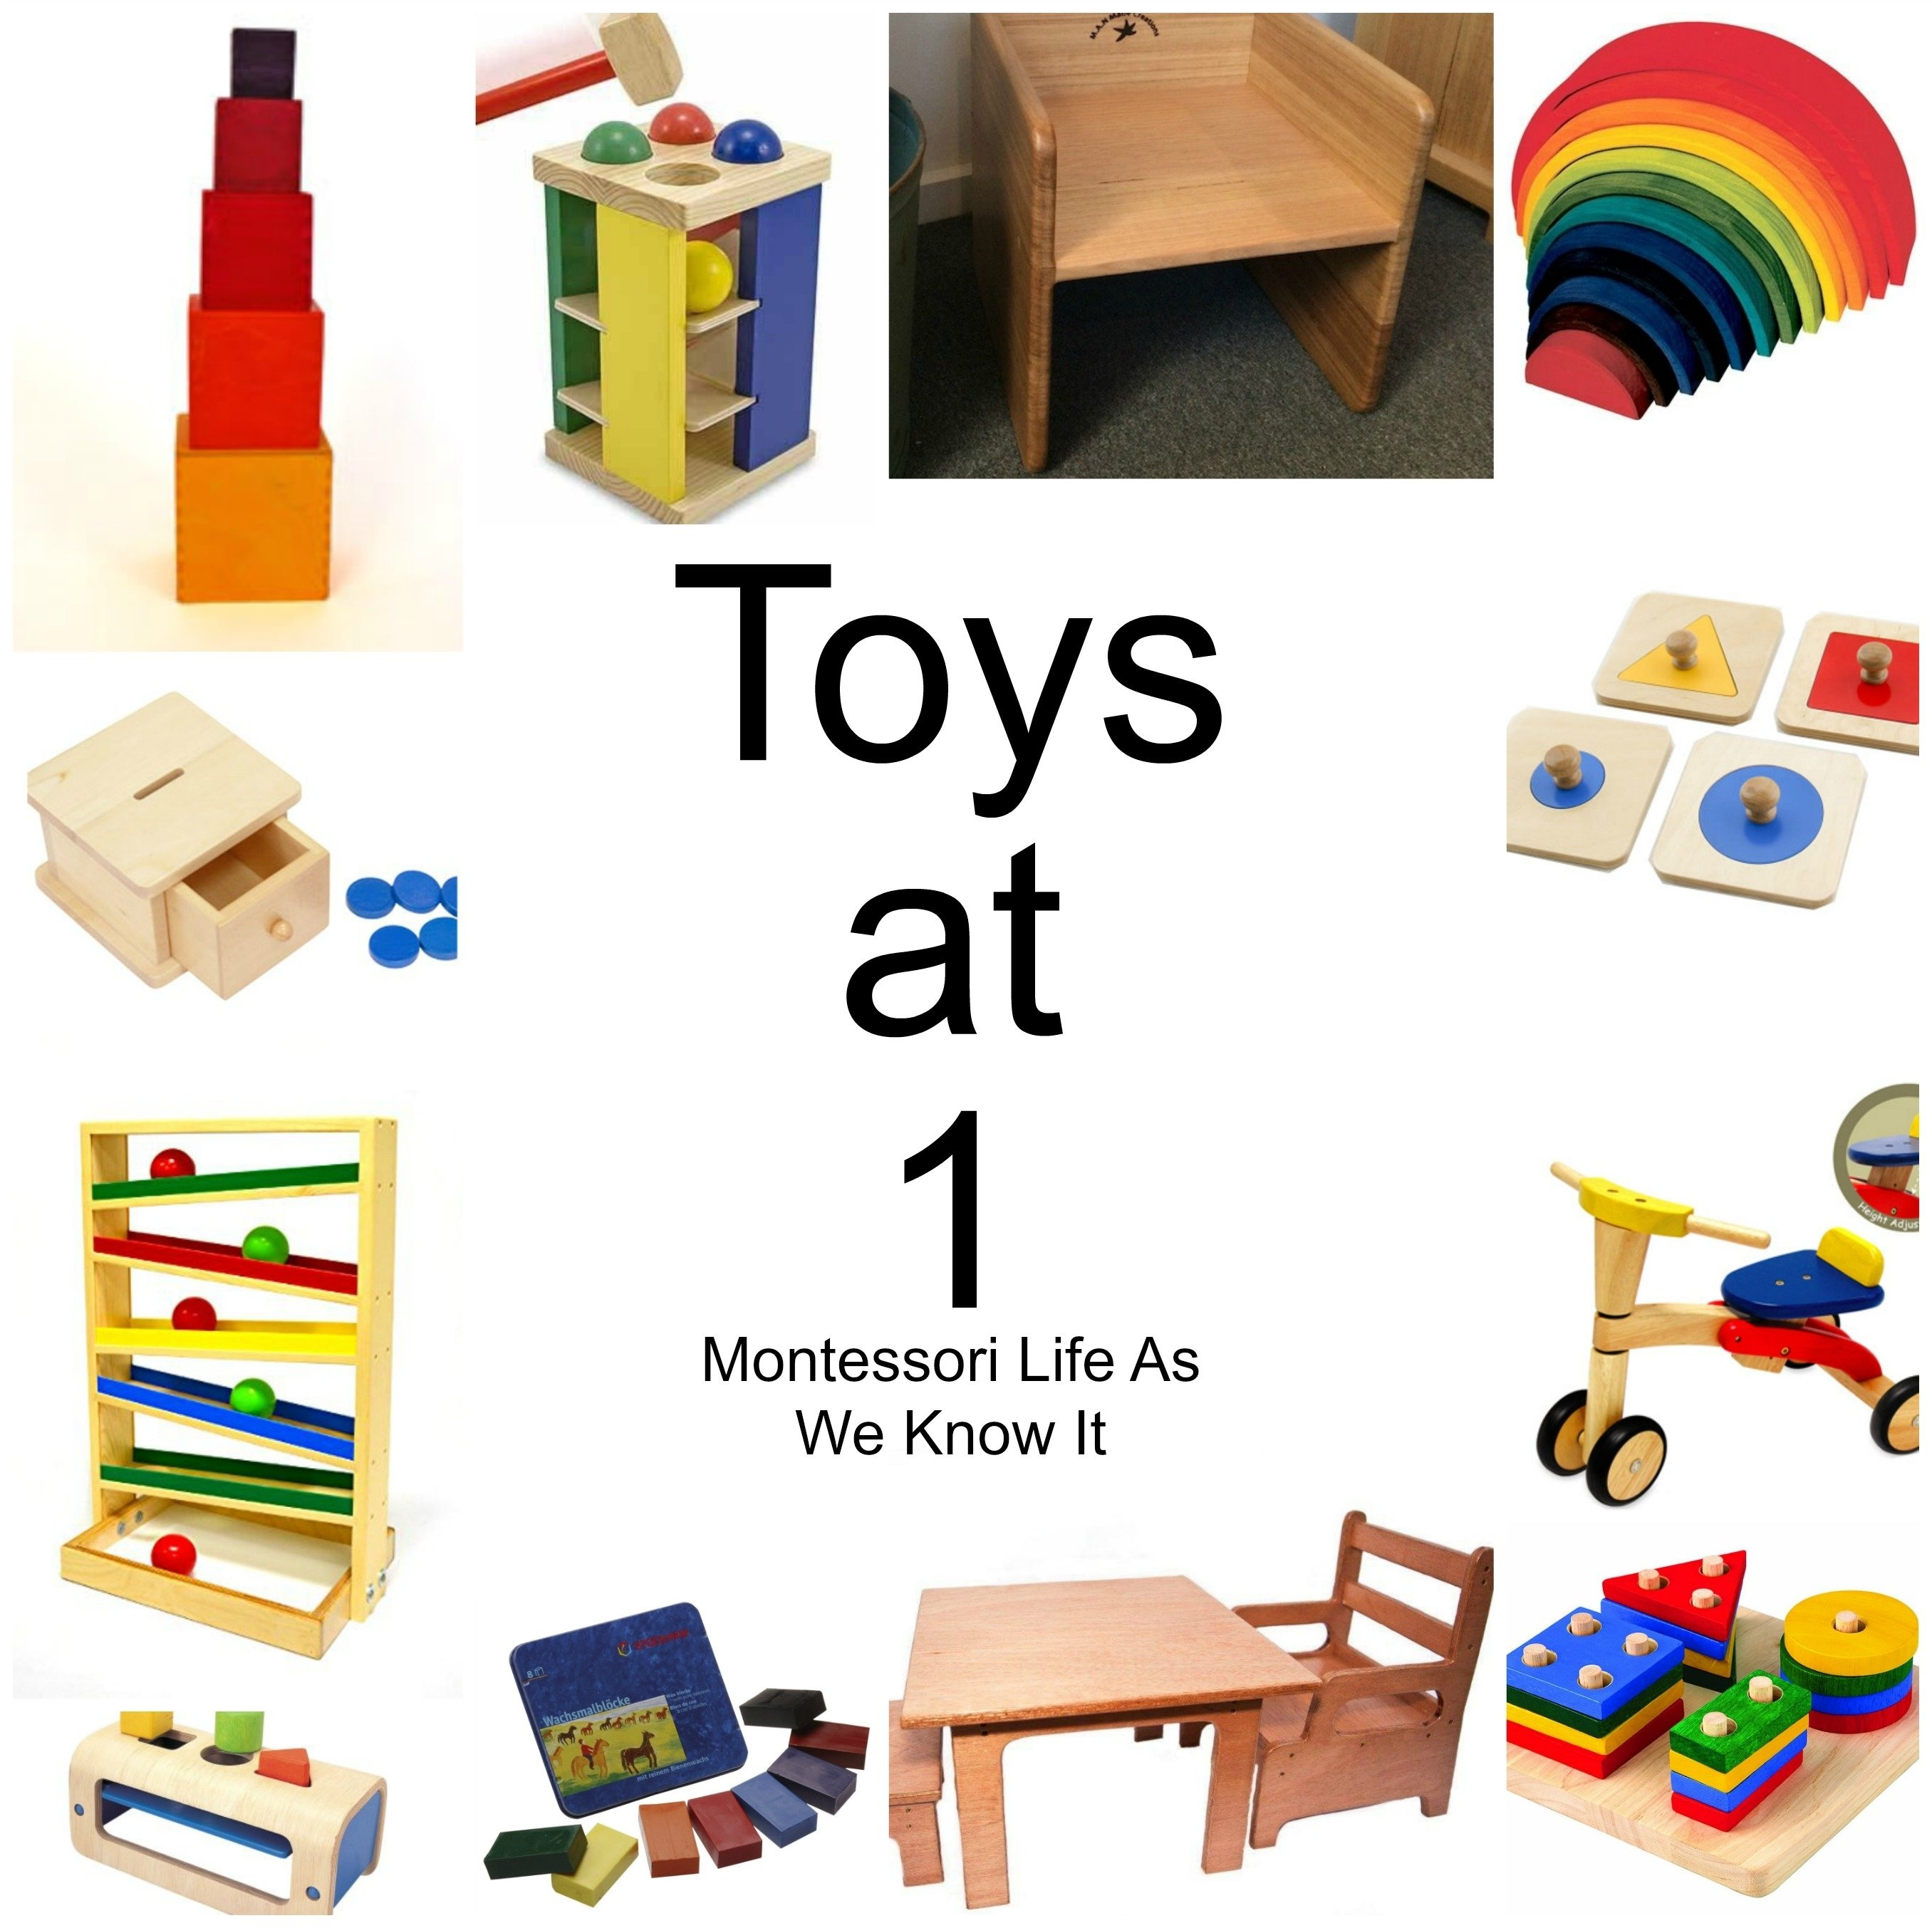 10 Ideal One Year Old Gift Ideas gift ideas for one year old montessori life as we know it 2020